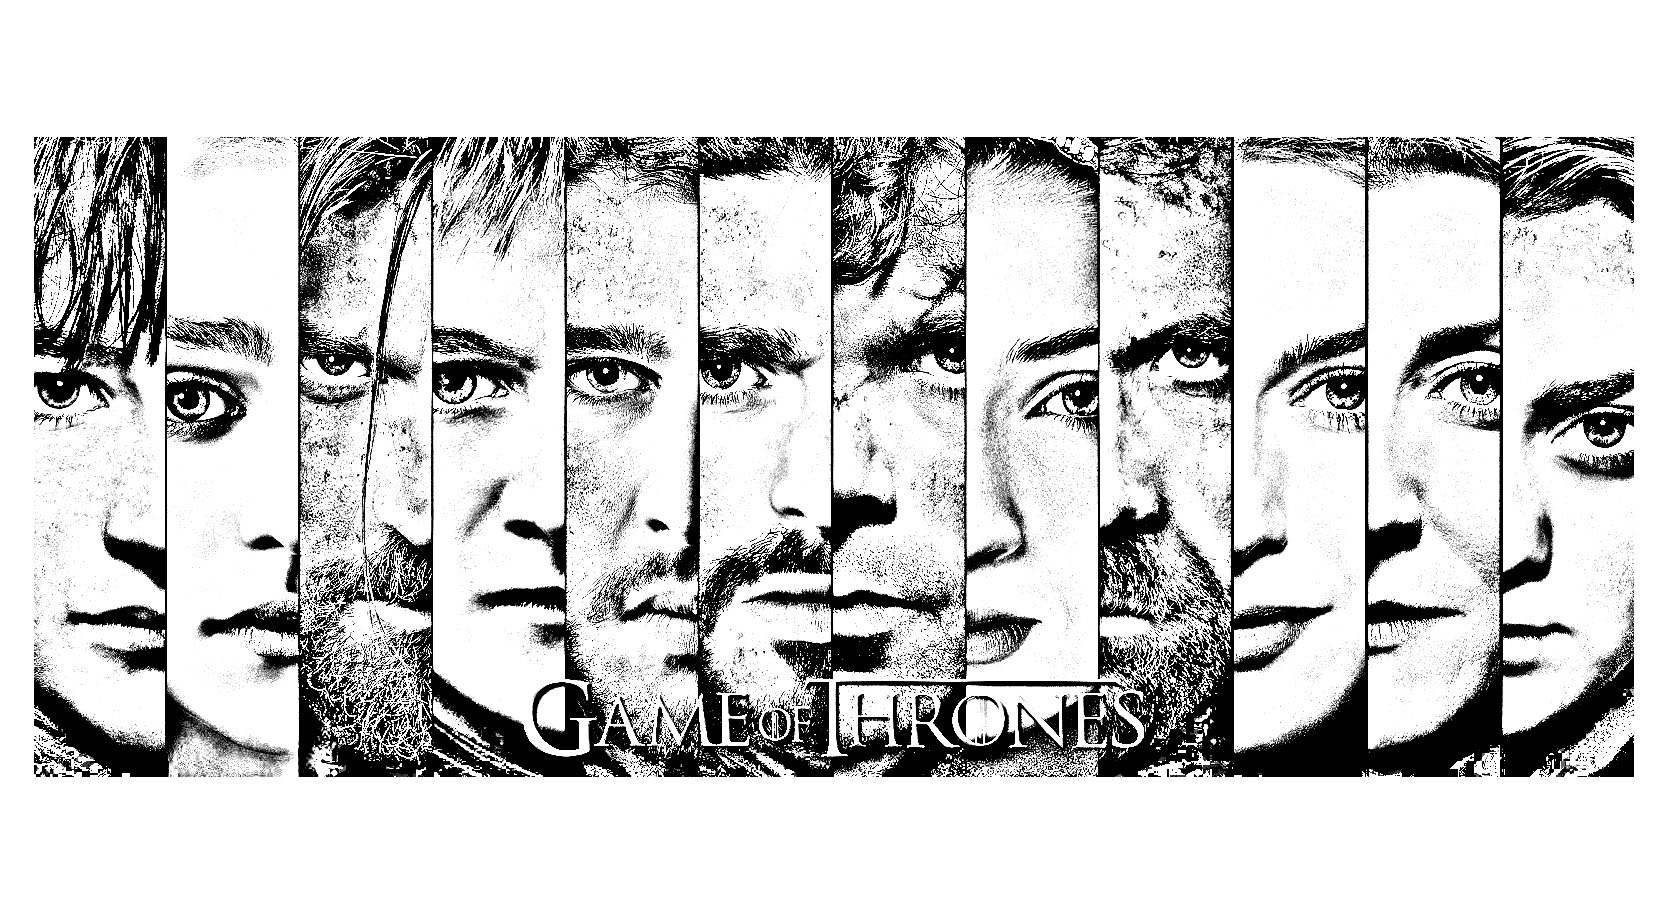 Coloring adult game of thrones visages